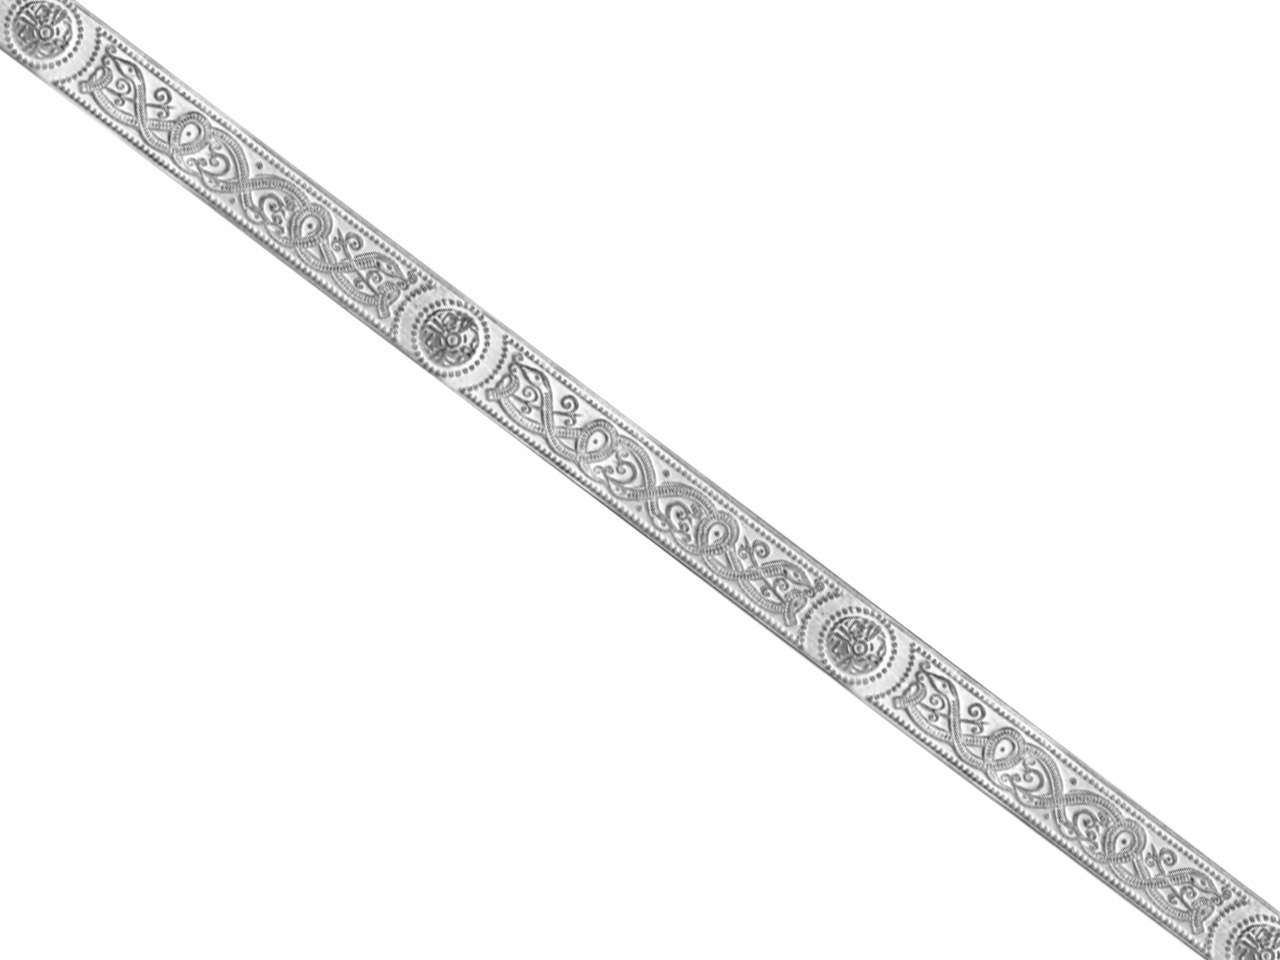 Sterling Silver Pattern Wire 3395  75g/mtr Half Hard, 1.0mm X 7mm